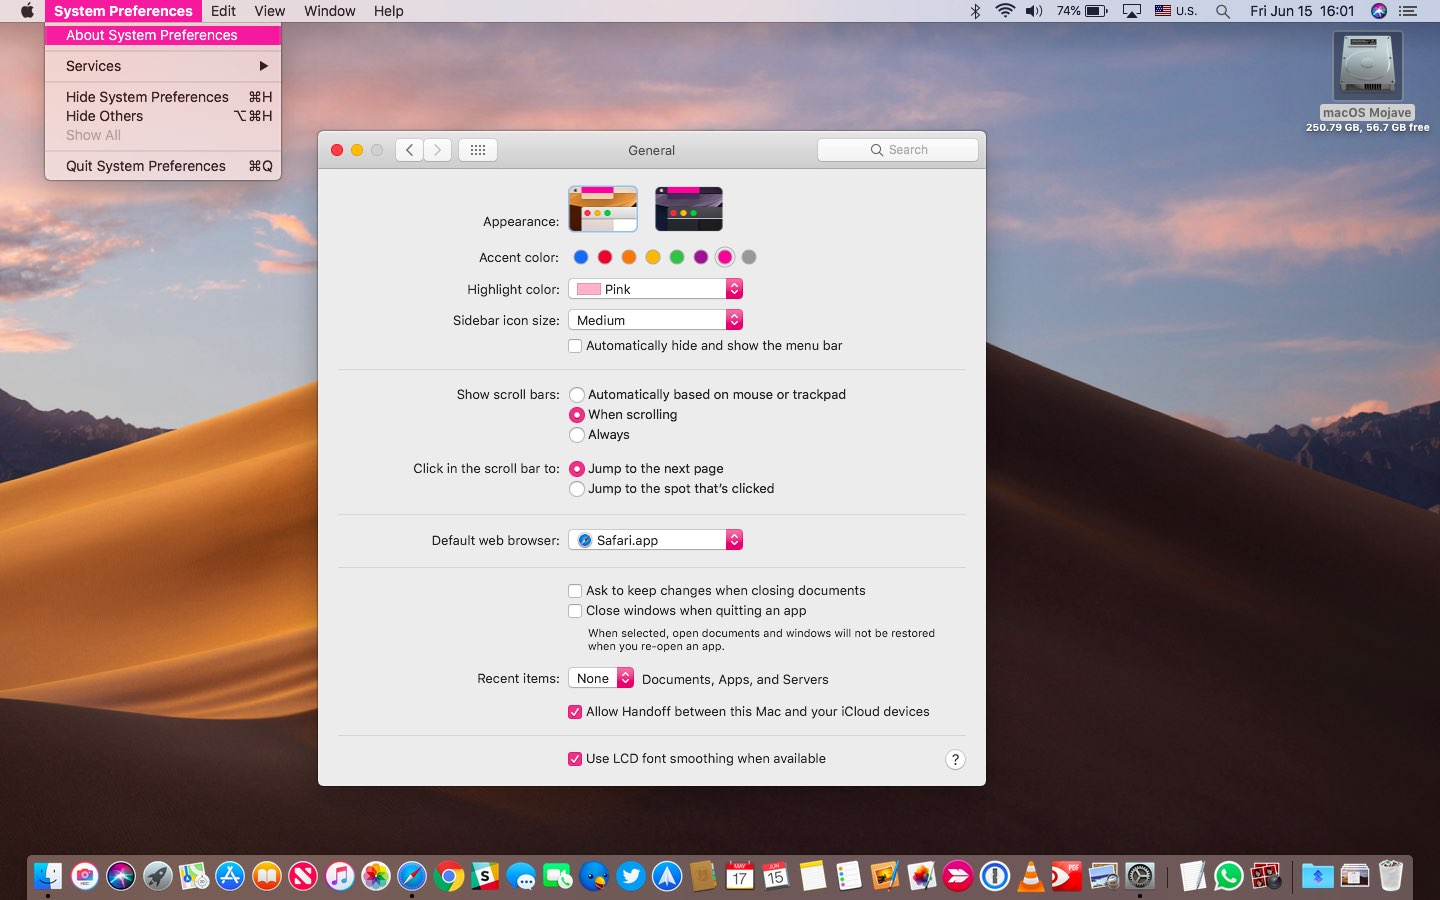 macOS Mojave Light Mode with the pink accent and highlight color